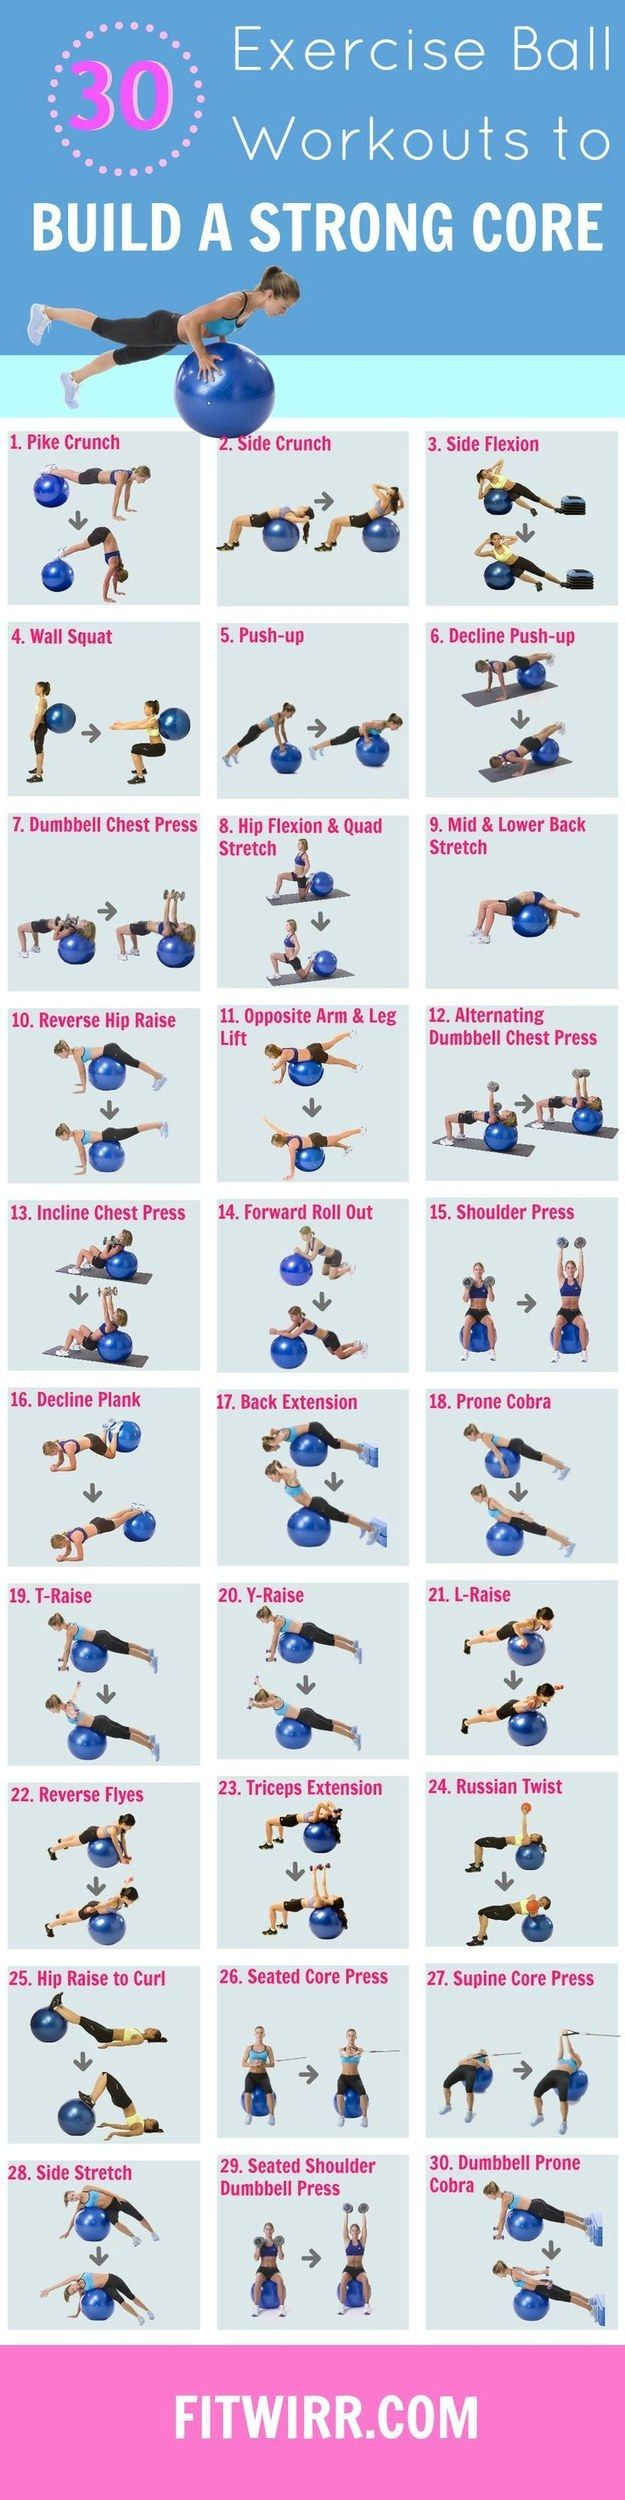 medium resolution of these 29 diagrams are all you need to get in shape fitnessfor making your core exercises